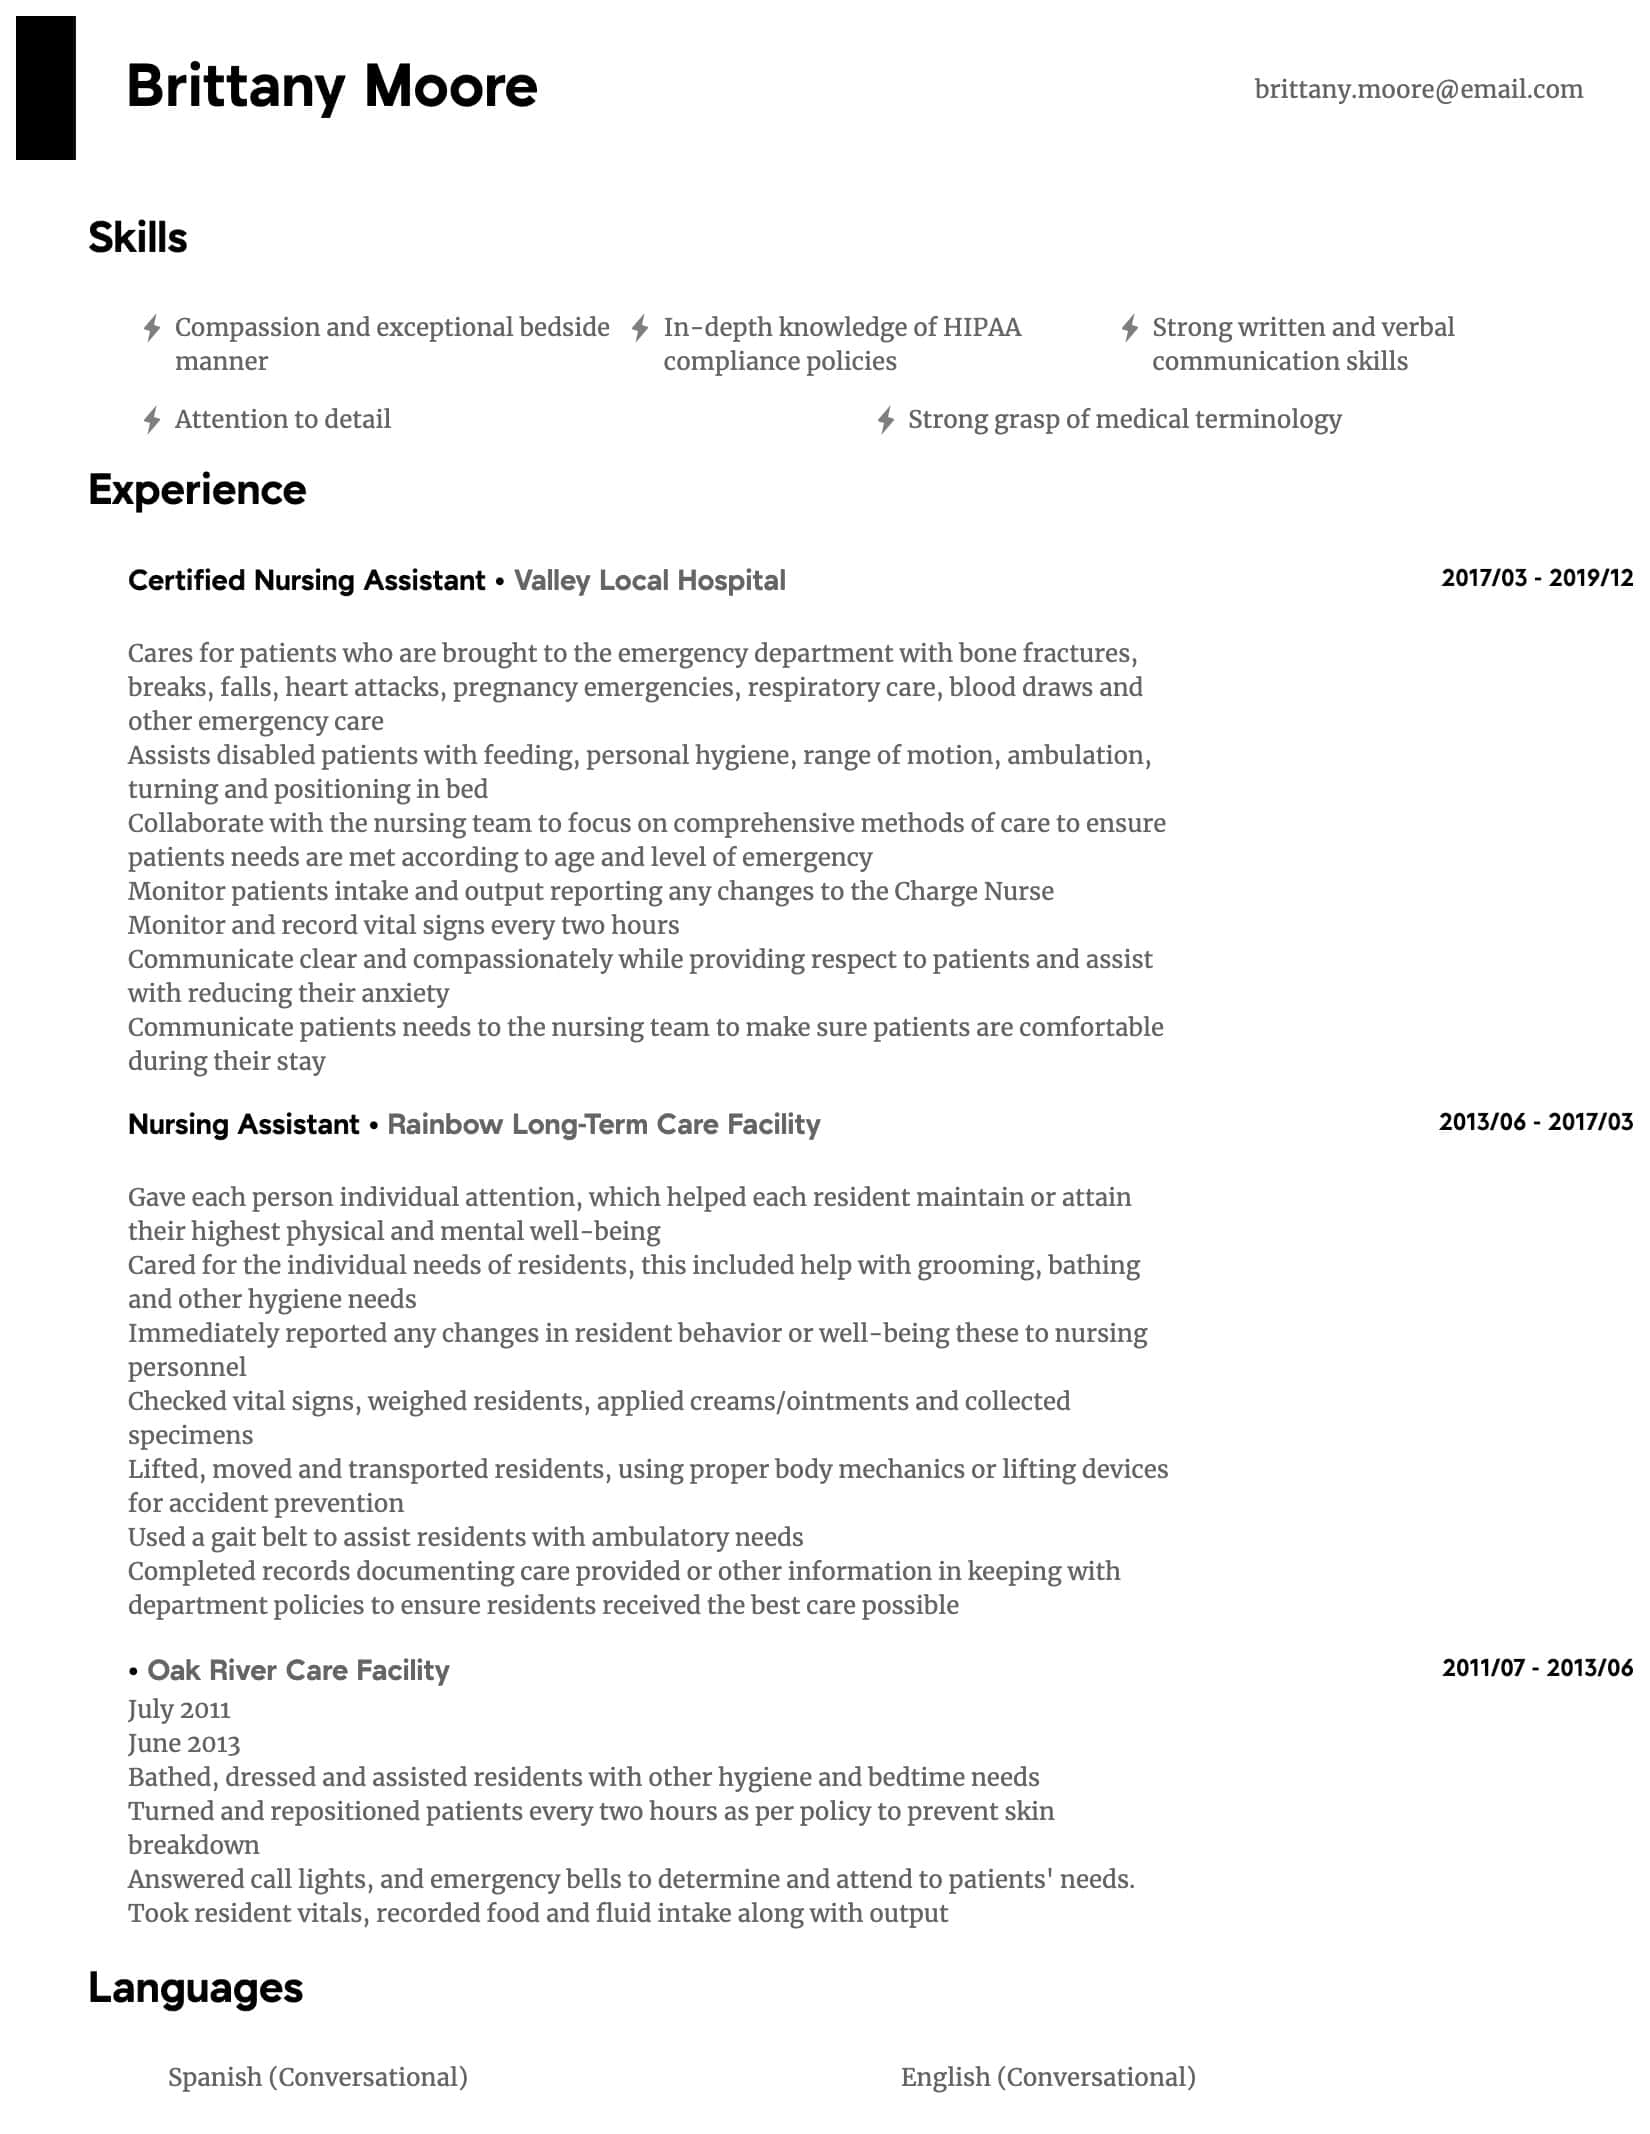 nursing assistant resume samples all experience levels entry level cna intermediate Resume Entry Level Cna Resume